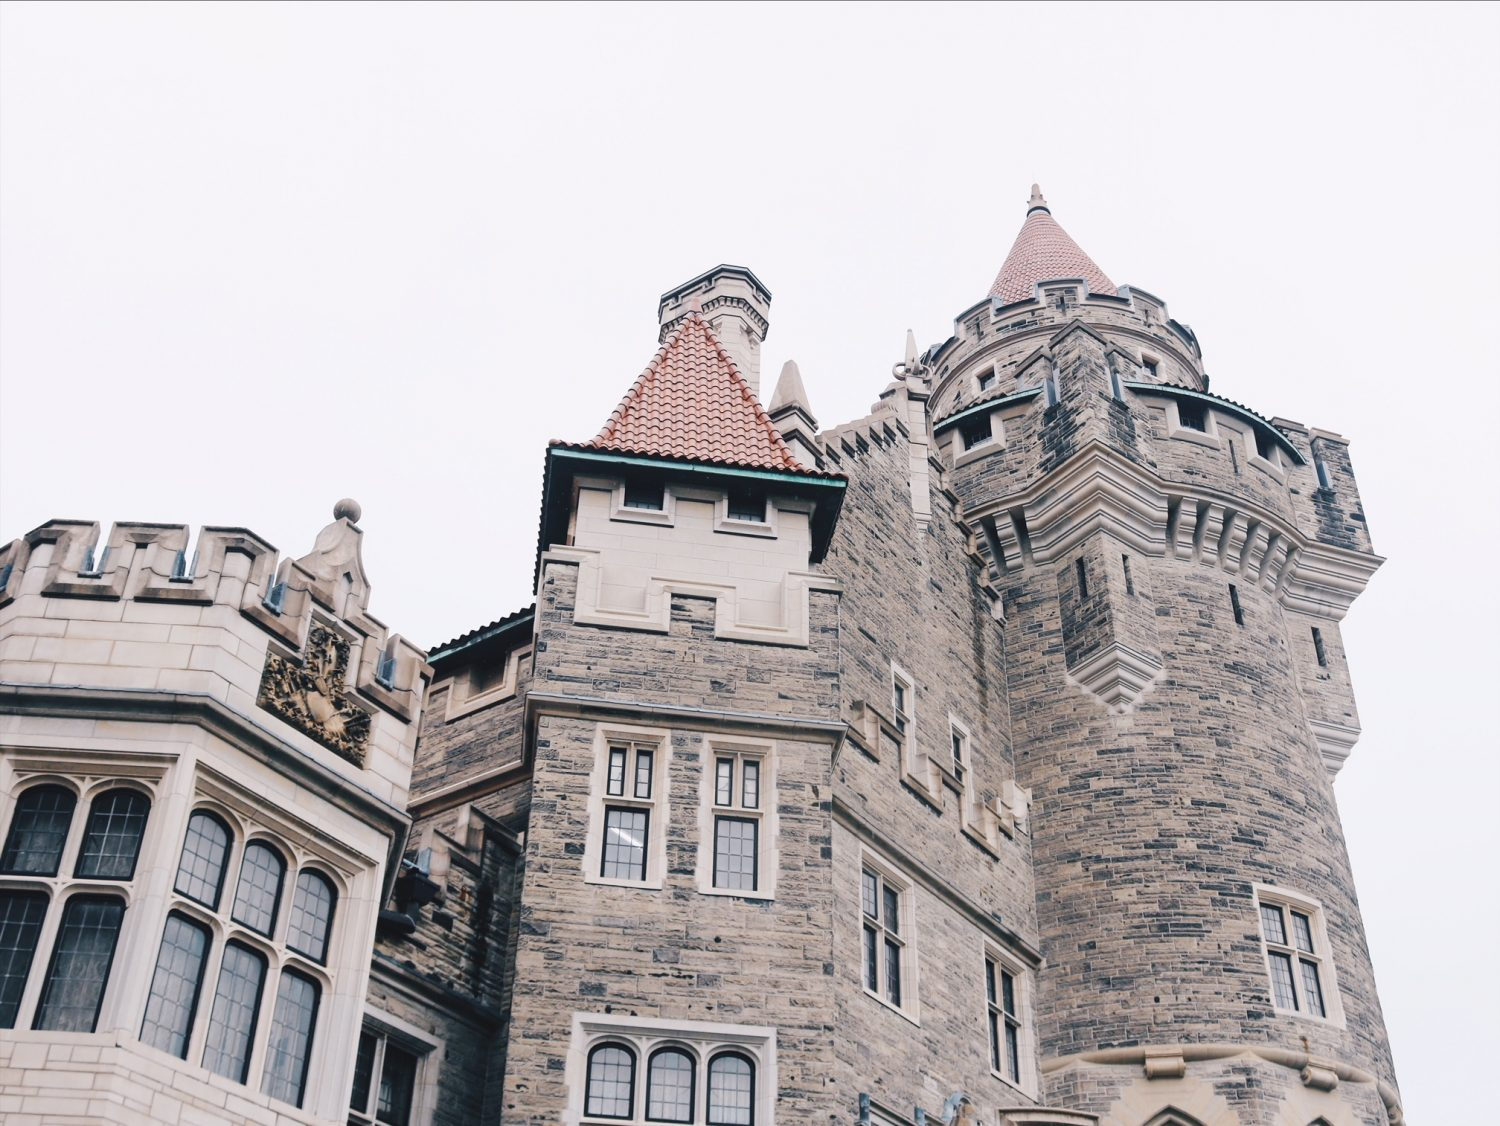 Visiting Casa Loma in Toronto